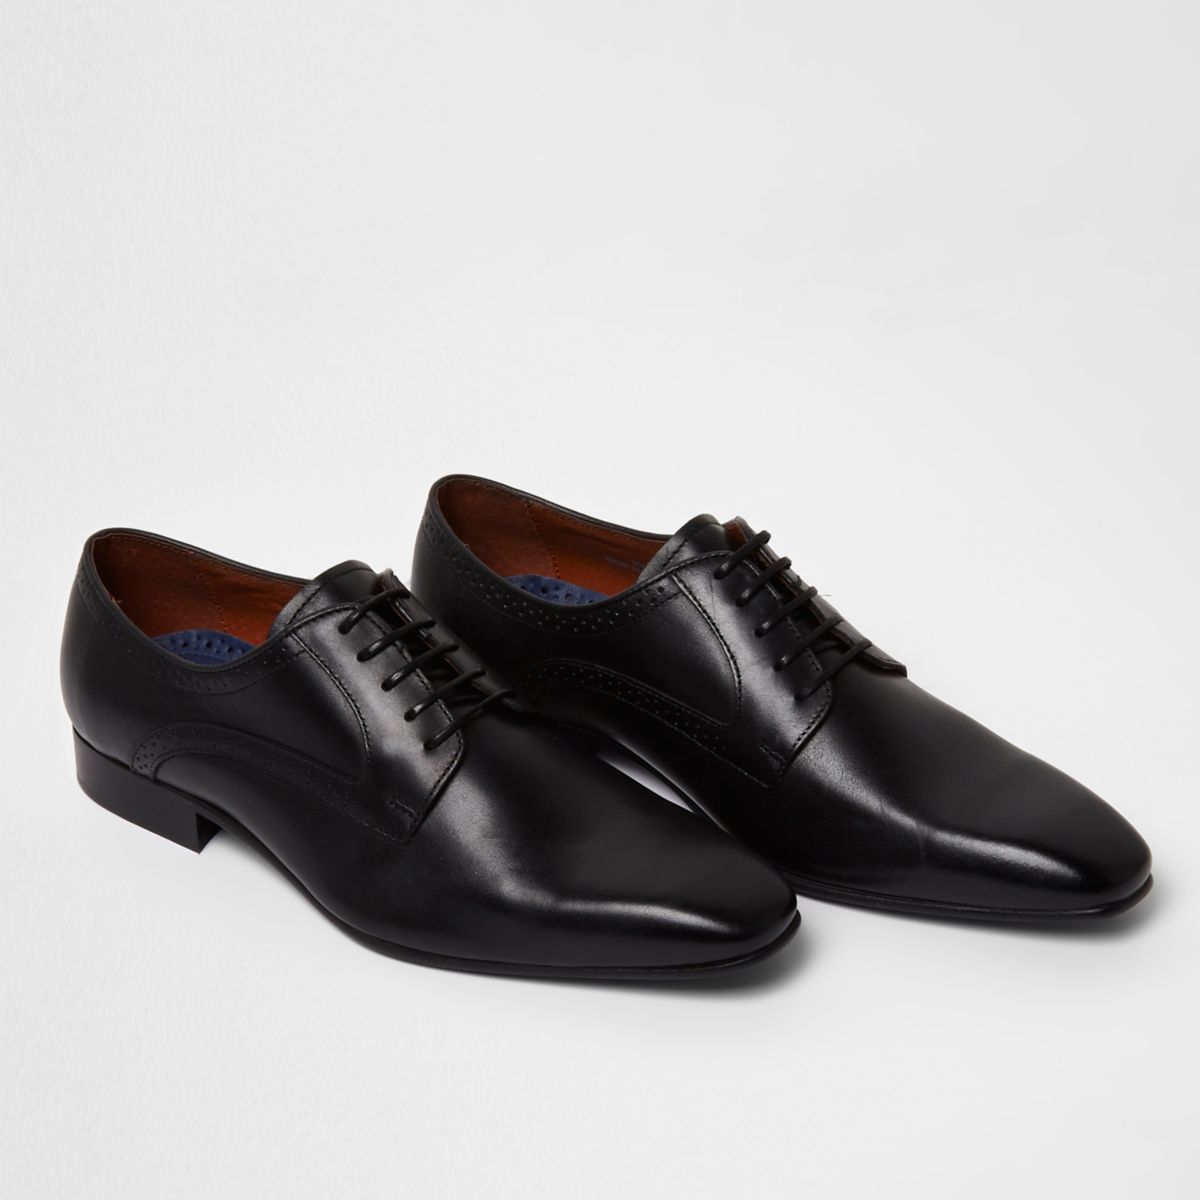 Mens Blacks square toe leather derby shoes River Island